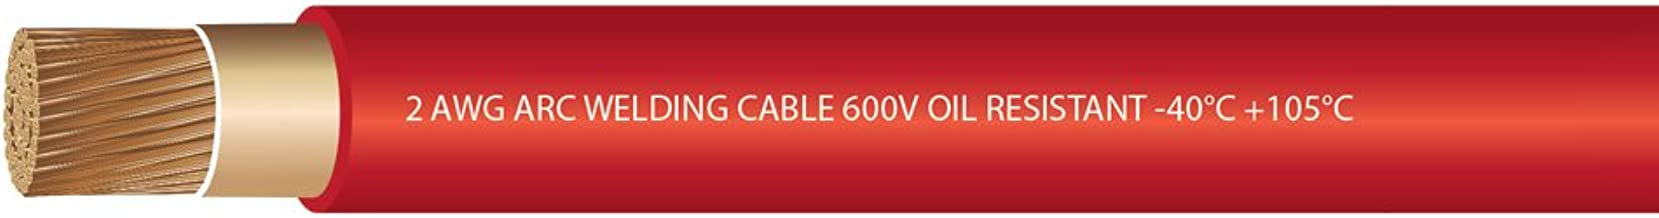 EWCS 2 Gauge Premium Extra Flexible Welding Cable 600 VOLT - Red - 20 Feet - Made in the USA